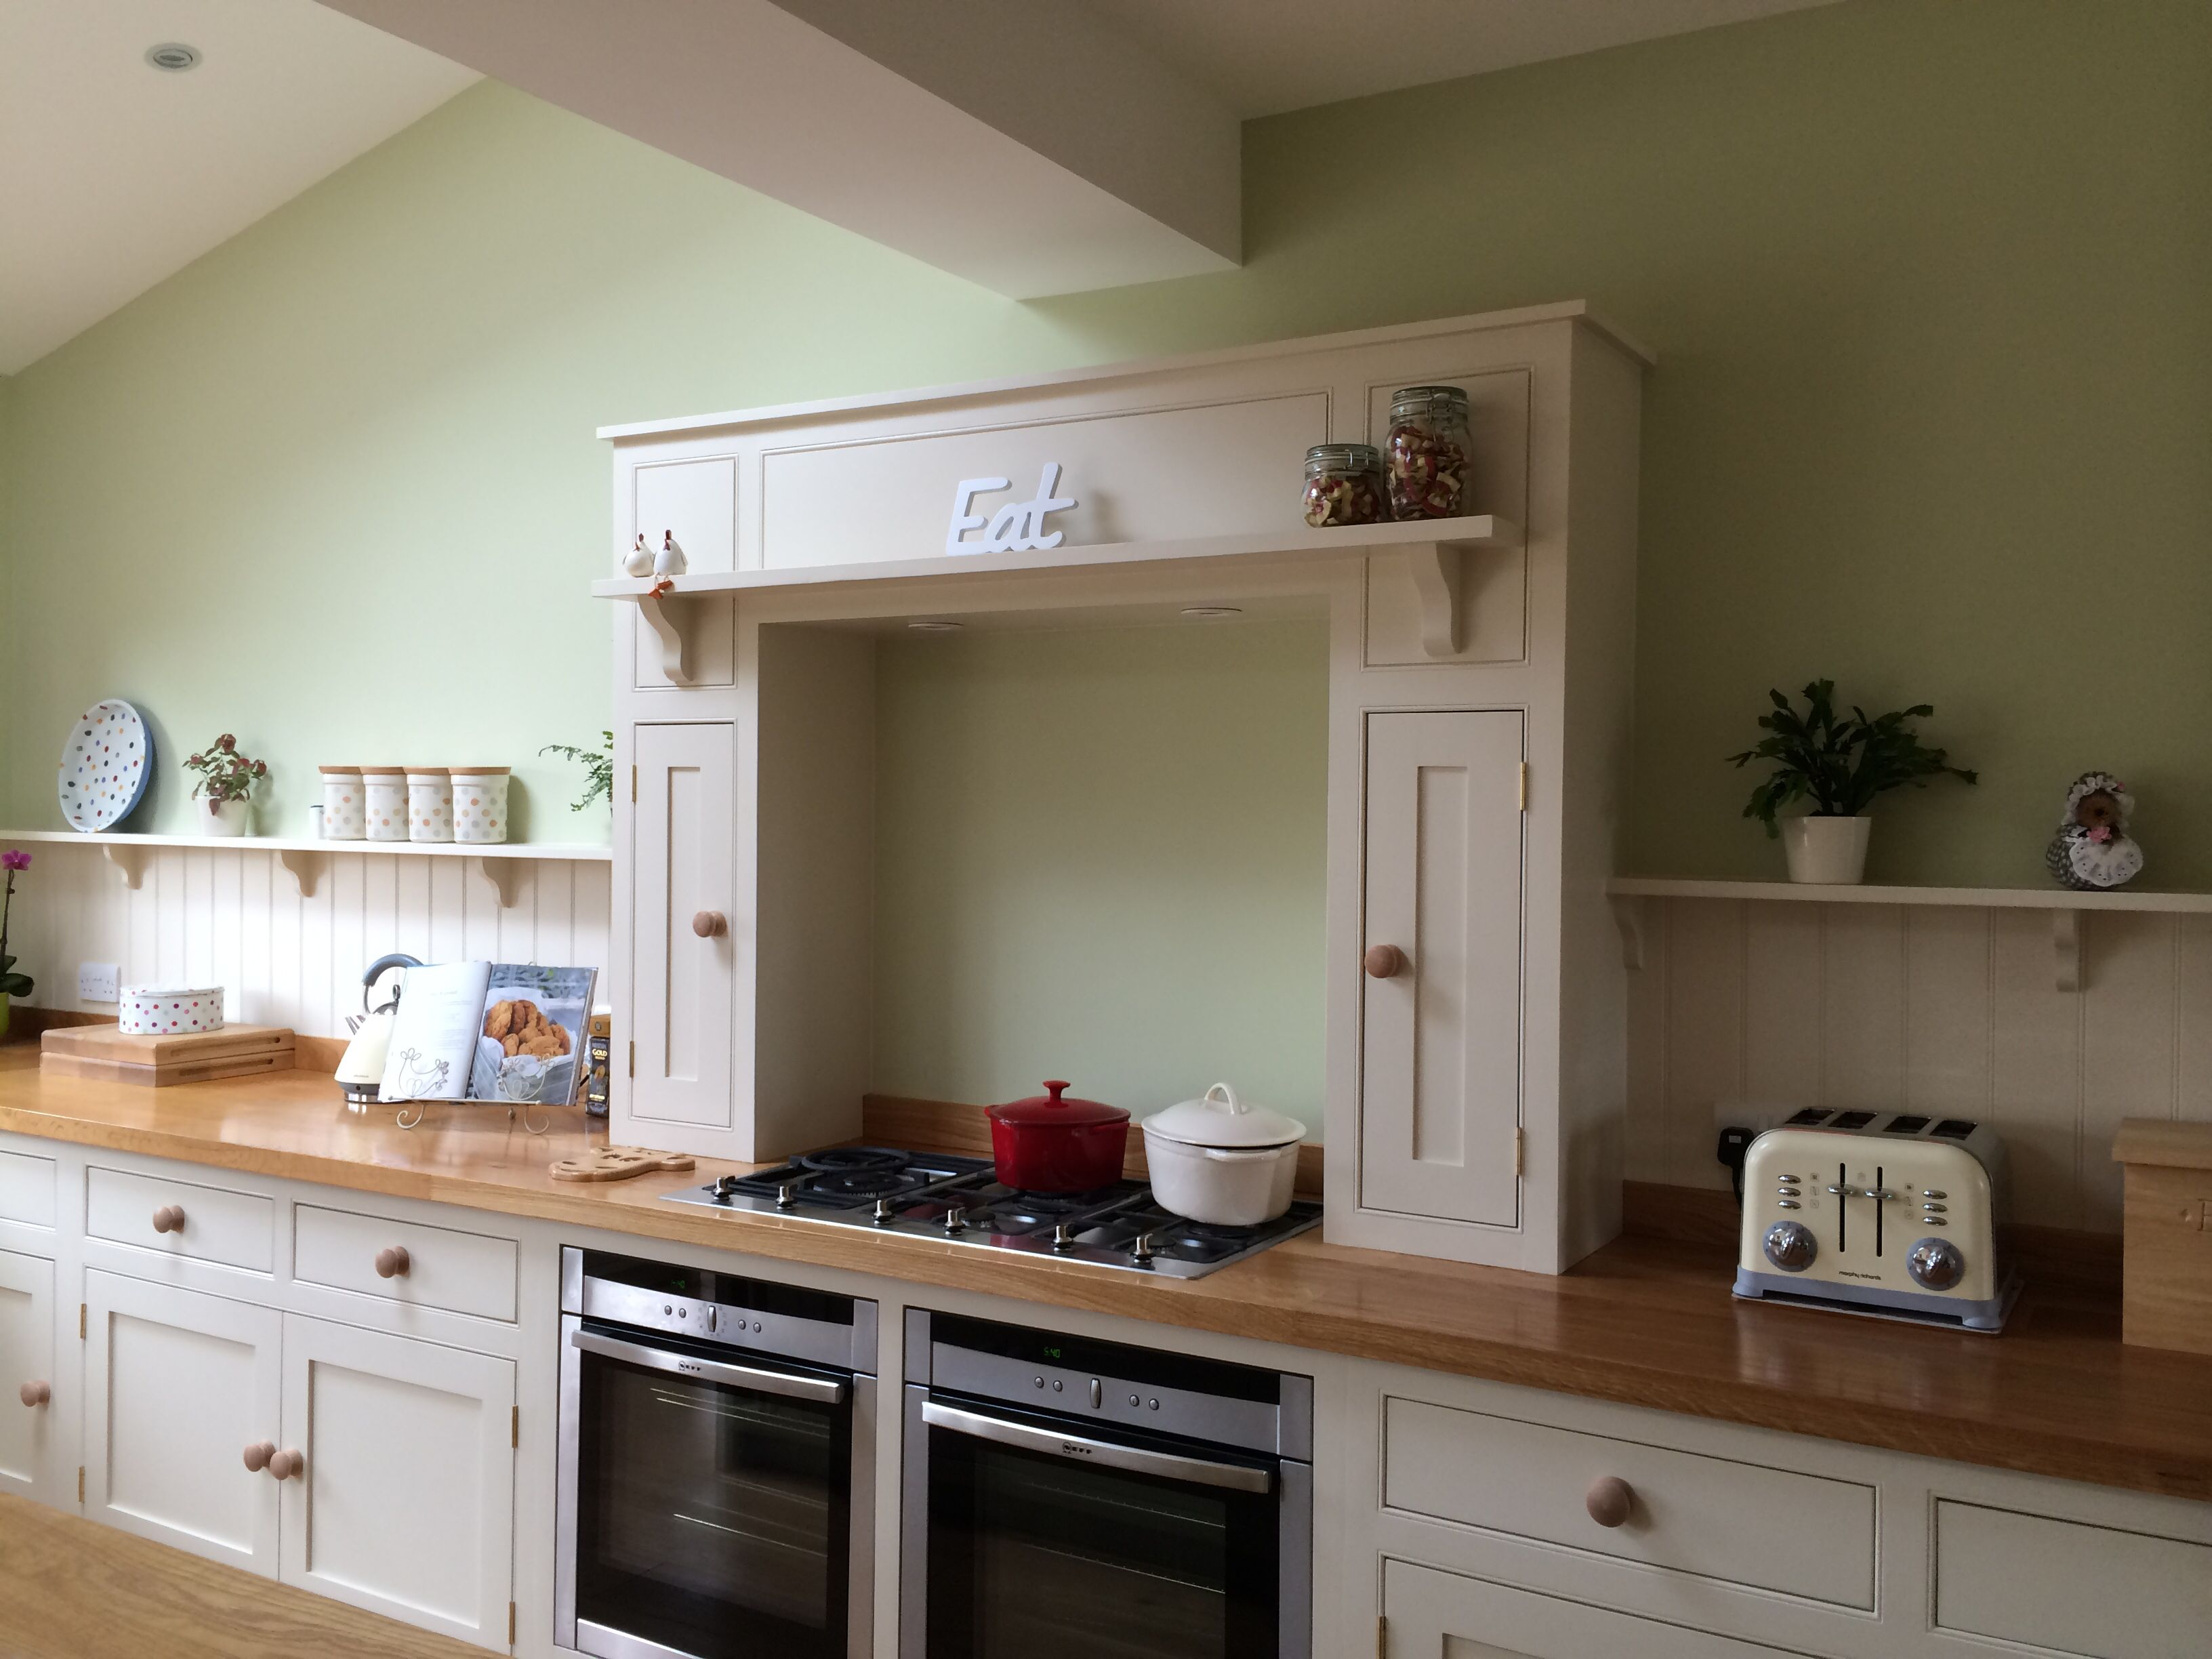 Best Country Kitchen Mantle Farrow Ball Lime White And Green 400 x 300